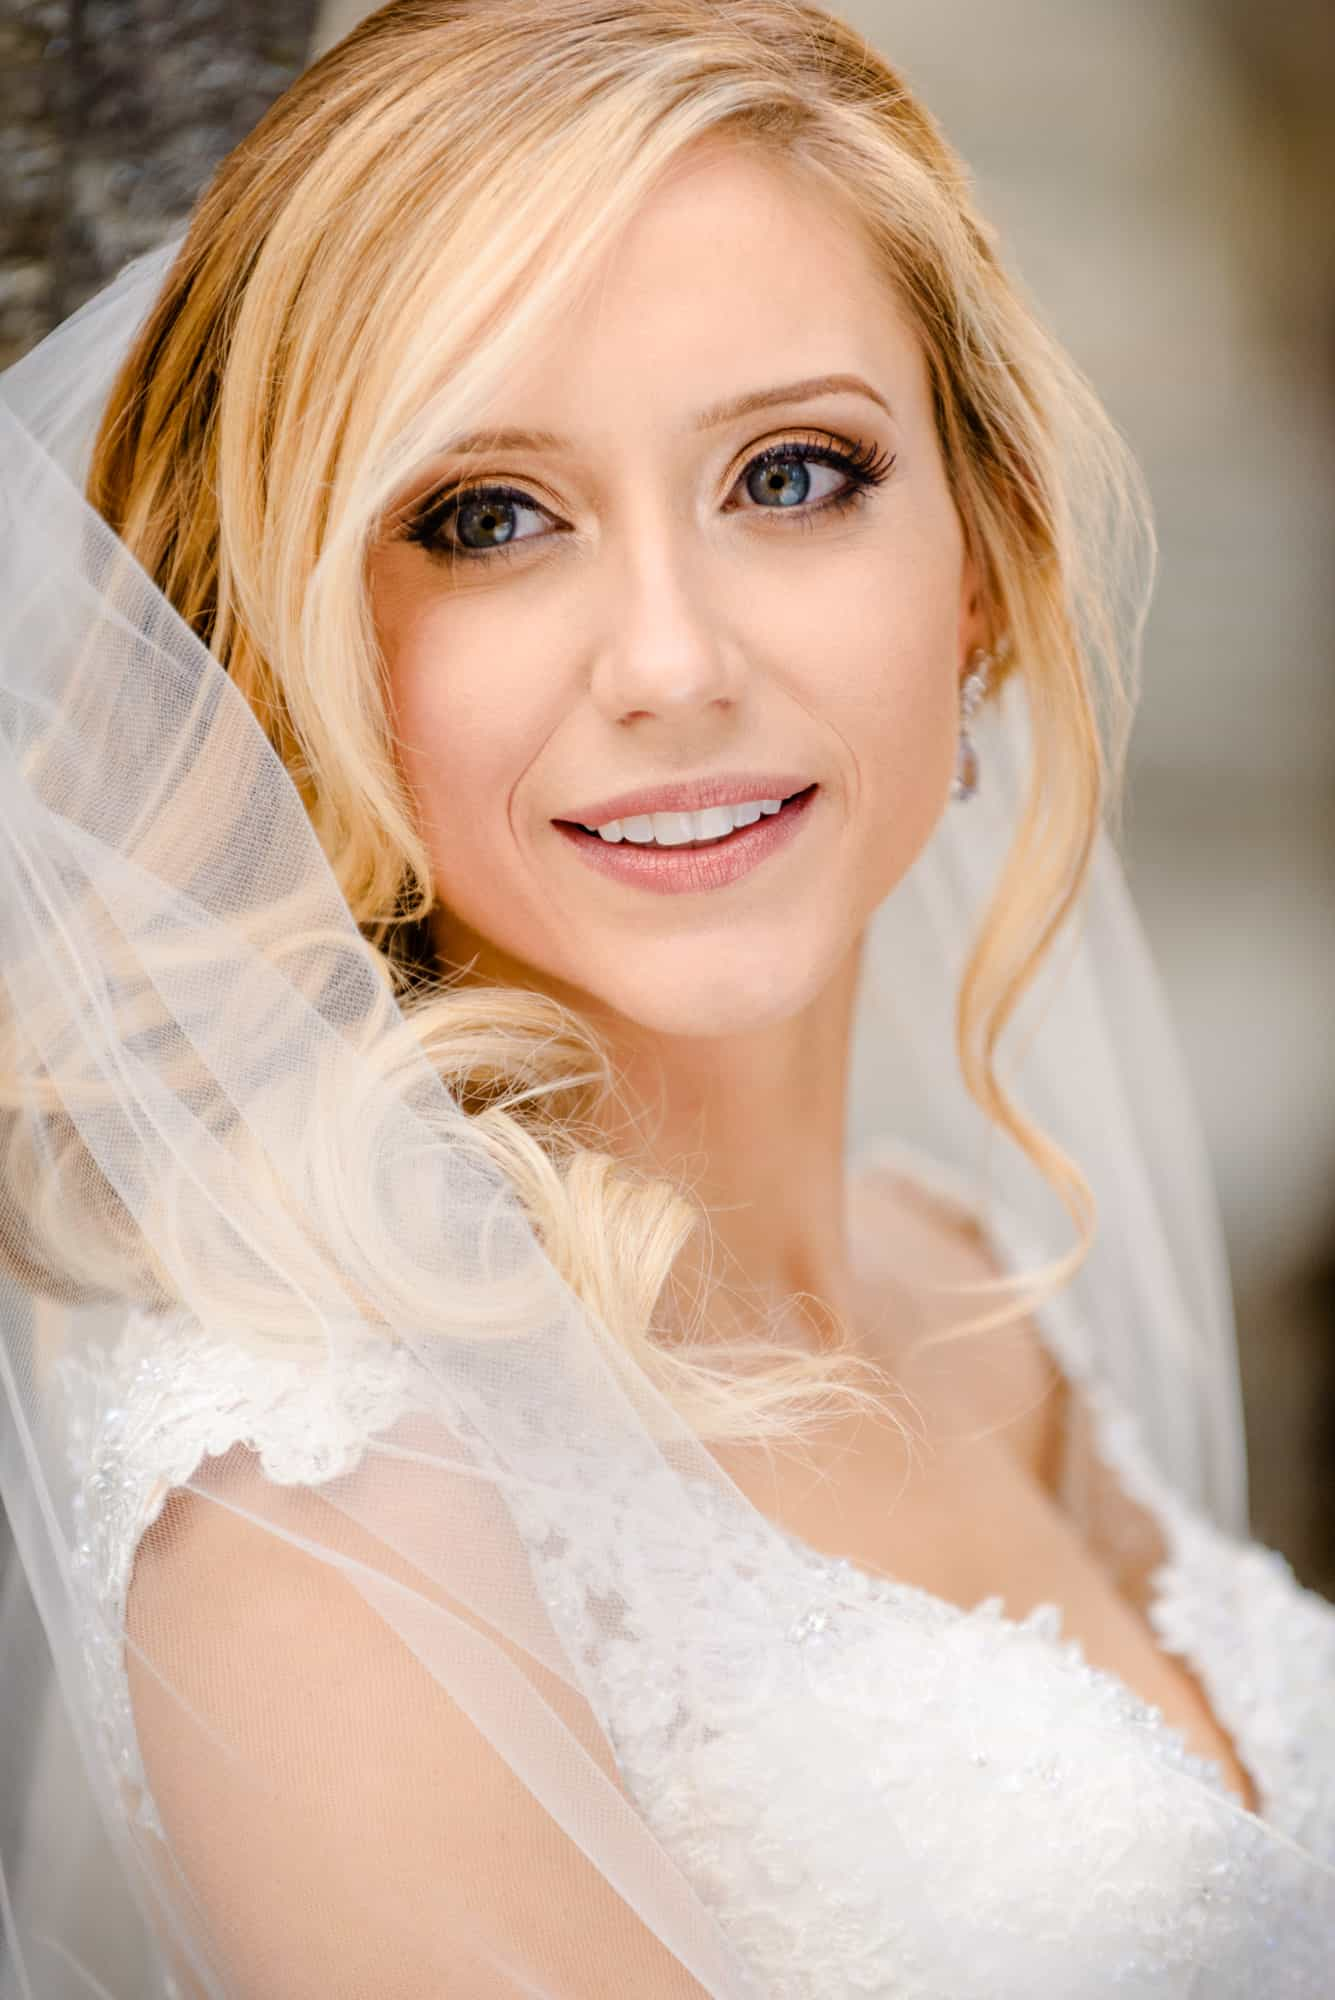 bridal photos, closeup of bride smiling